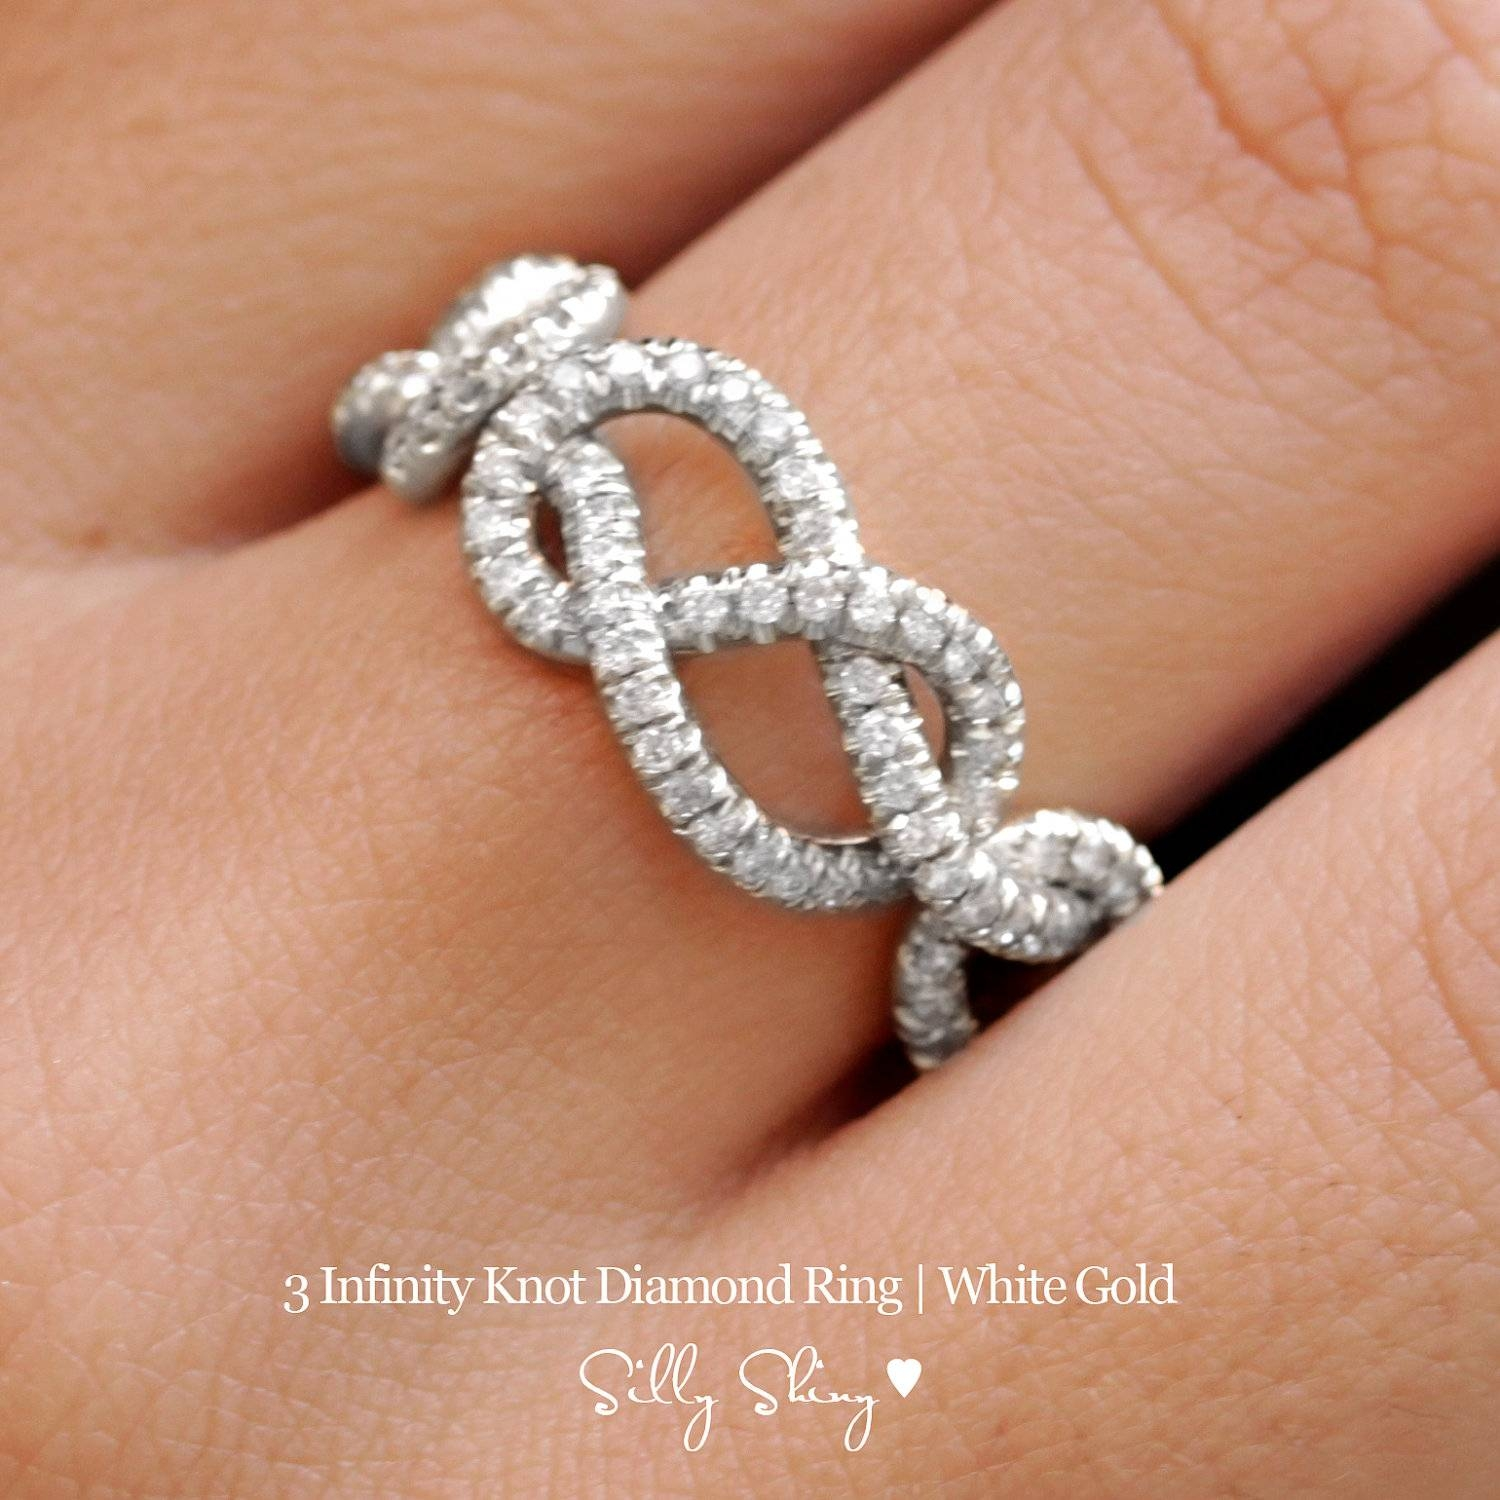 Jordan Diamond Rings | Wedding, Promise, Diamond, Engagement Rings Throughout Infinity Knot Engagement Rings (View 9 of 15)